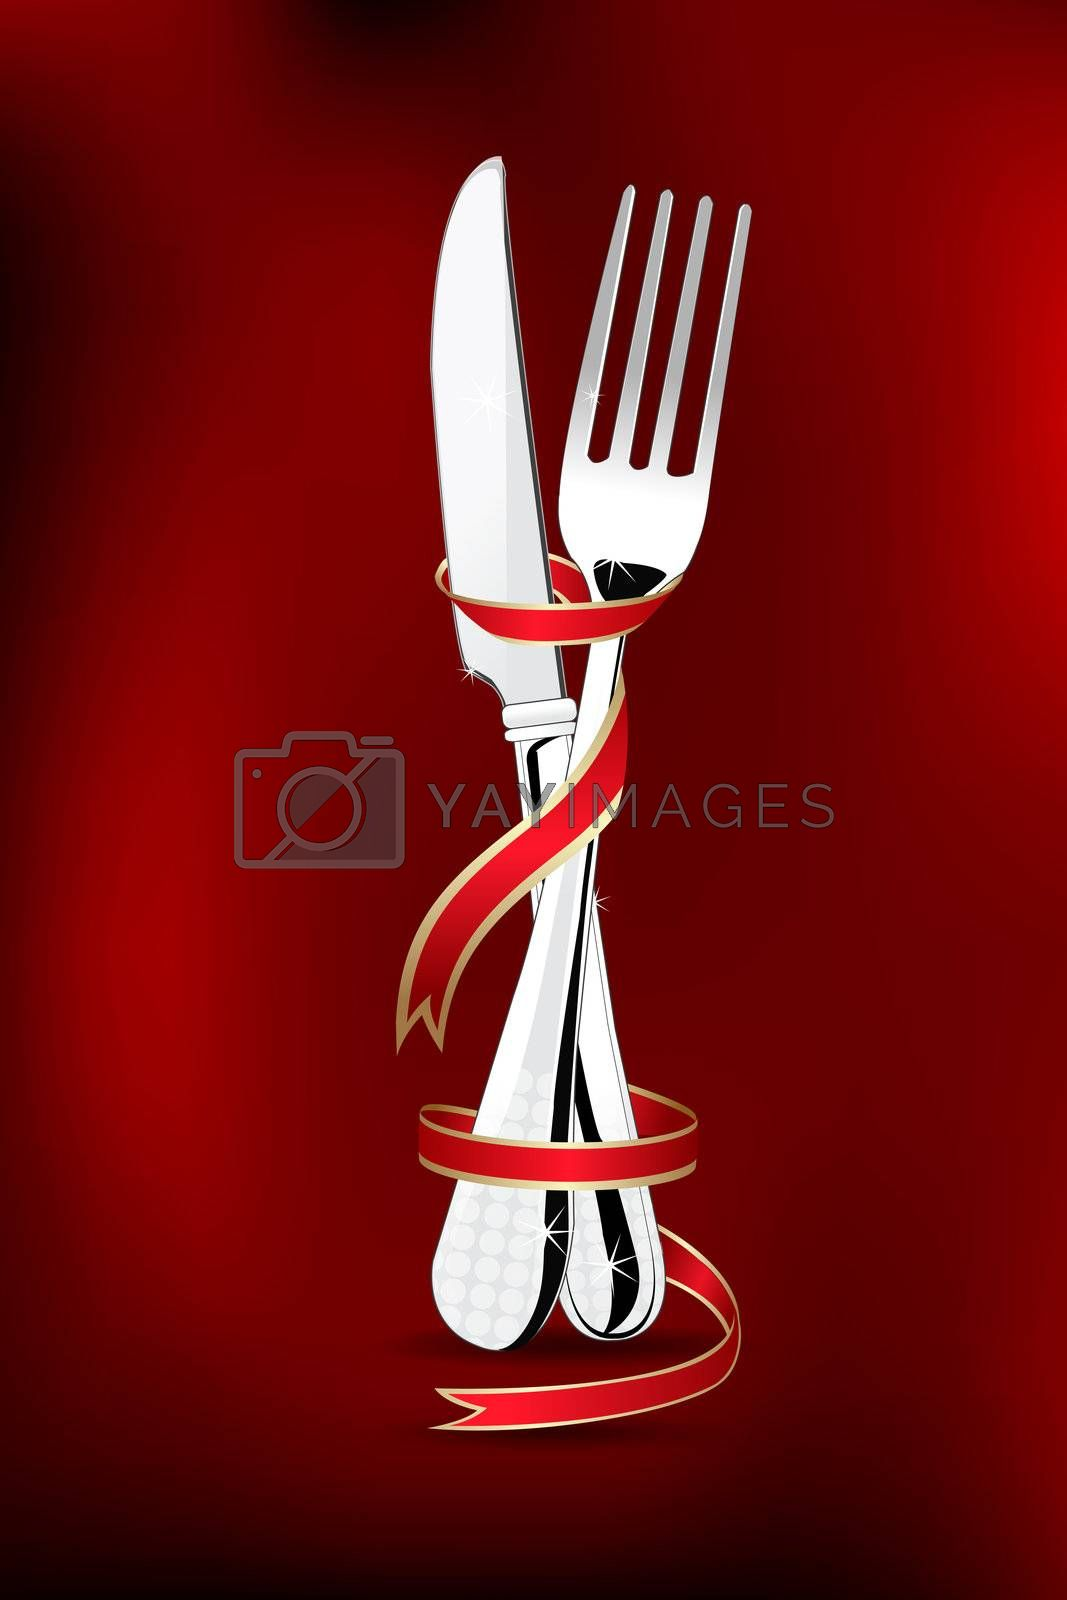 illustration of spoon and fork wrapped in ribbon on abstract background